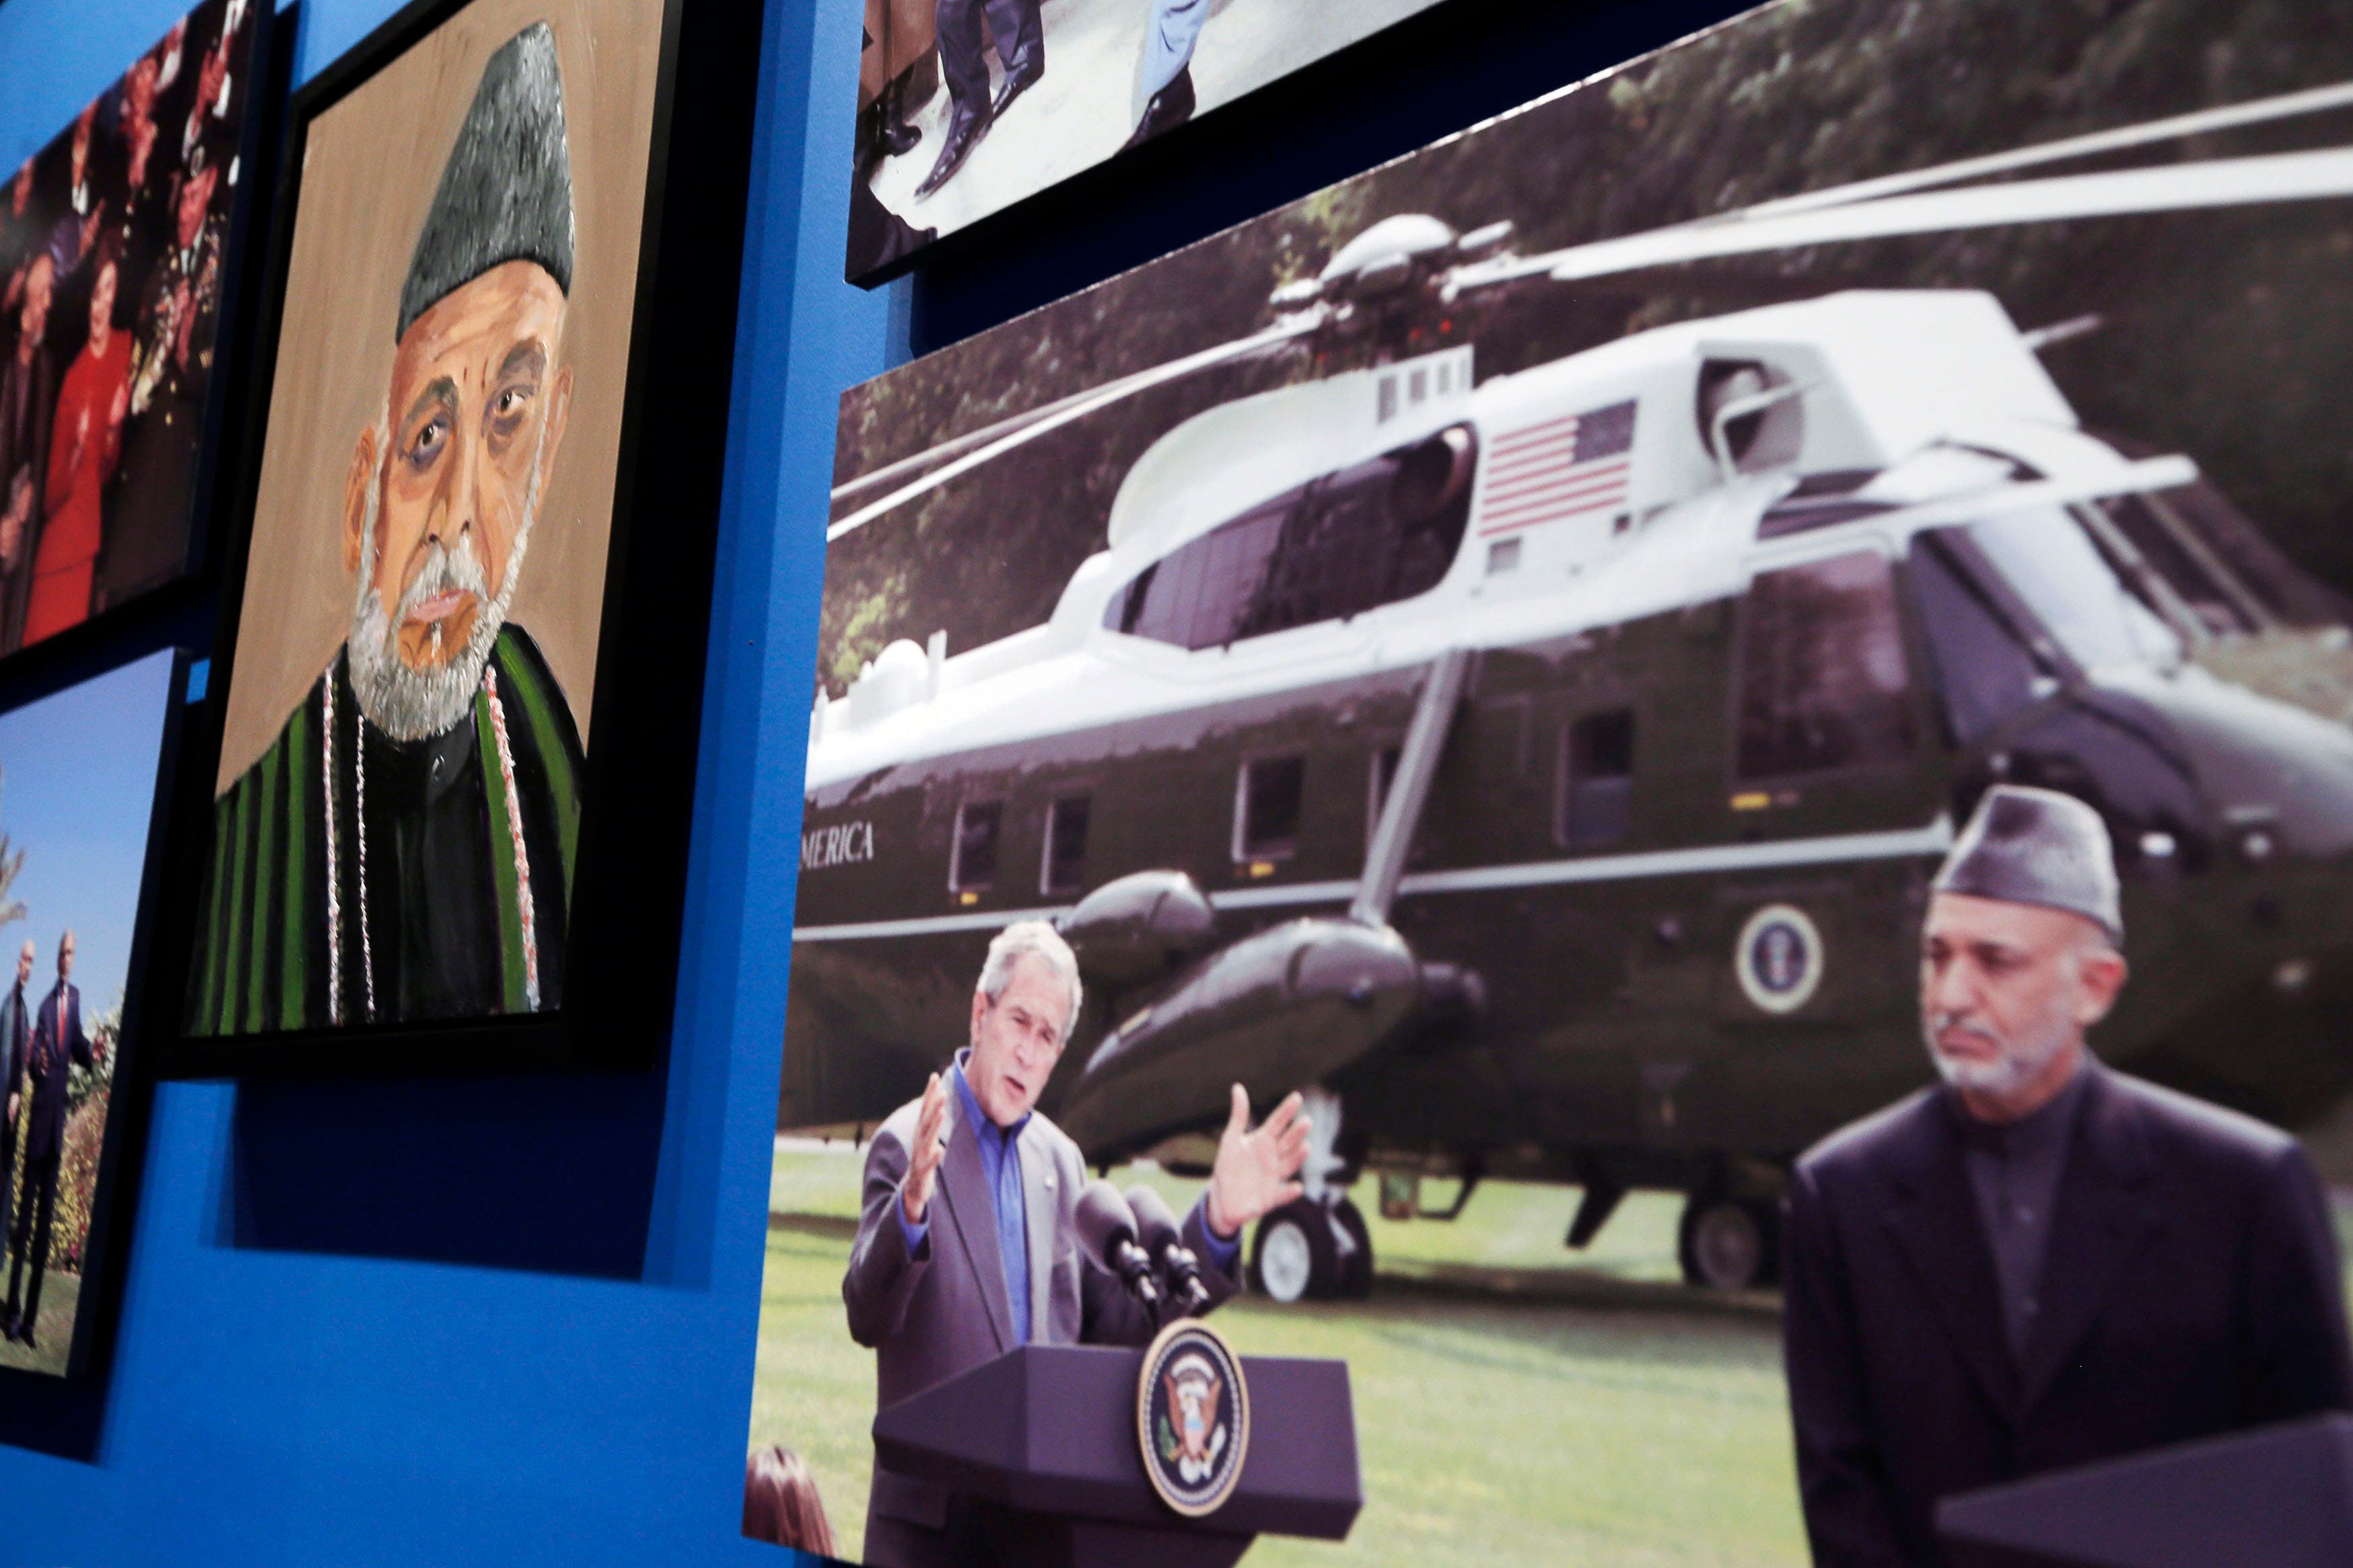 A portrait of Afghan President Hamid Karzai, painted by former U.S. President George W. Bush, is displayed at an exhibit at the Bush Presidential Library and Museum in Dallas, Texas April 4, 2014. (Reuters)